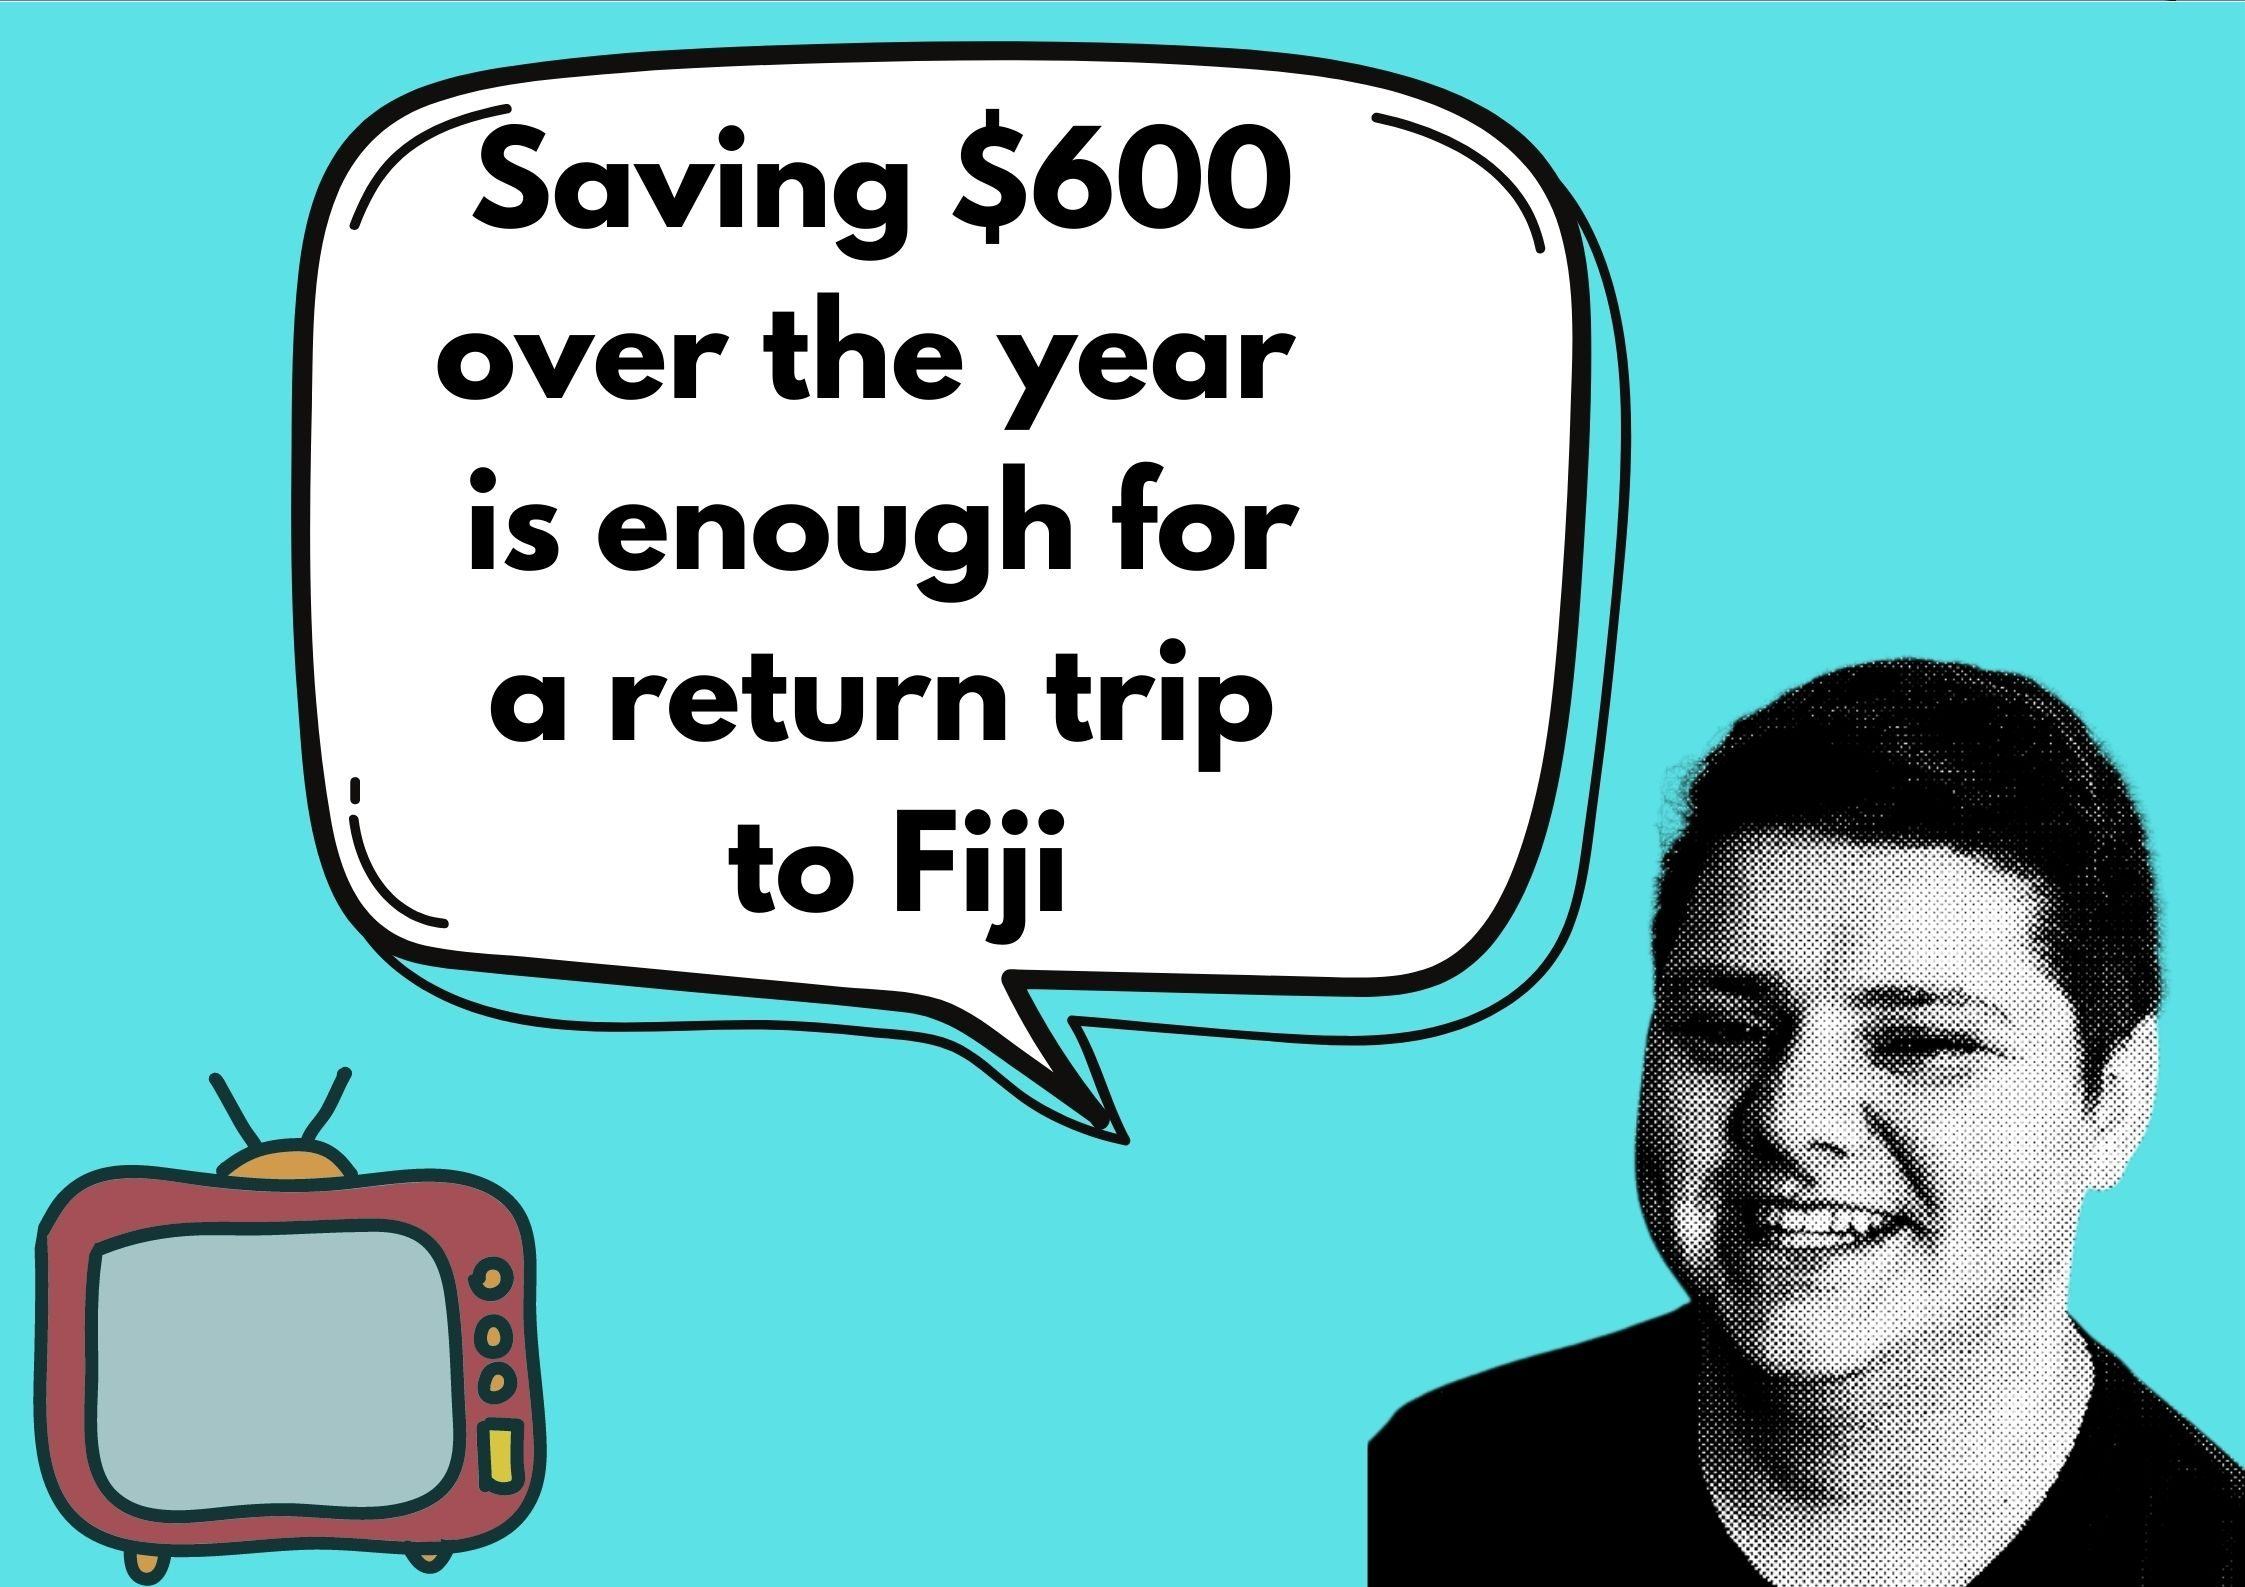 Saving $600 for a return trip to Fiji, Dylan Crismale, travel expert